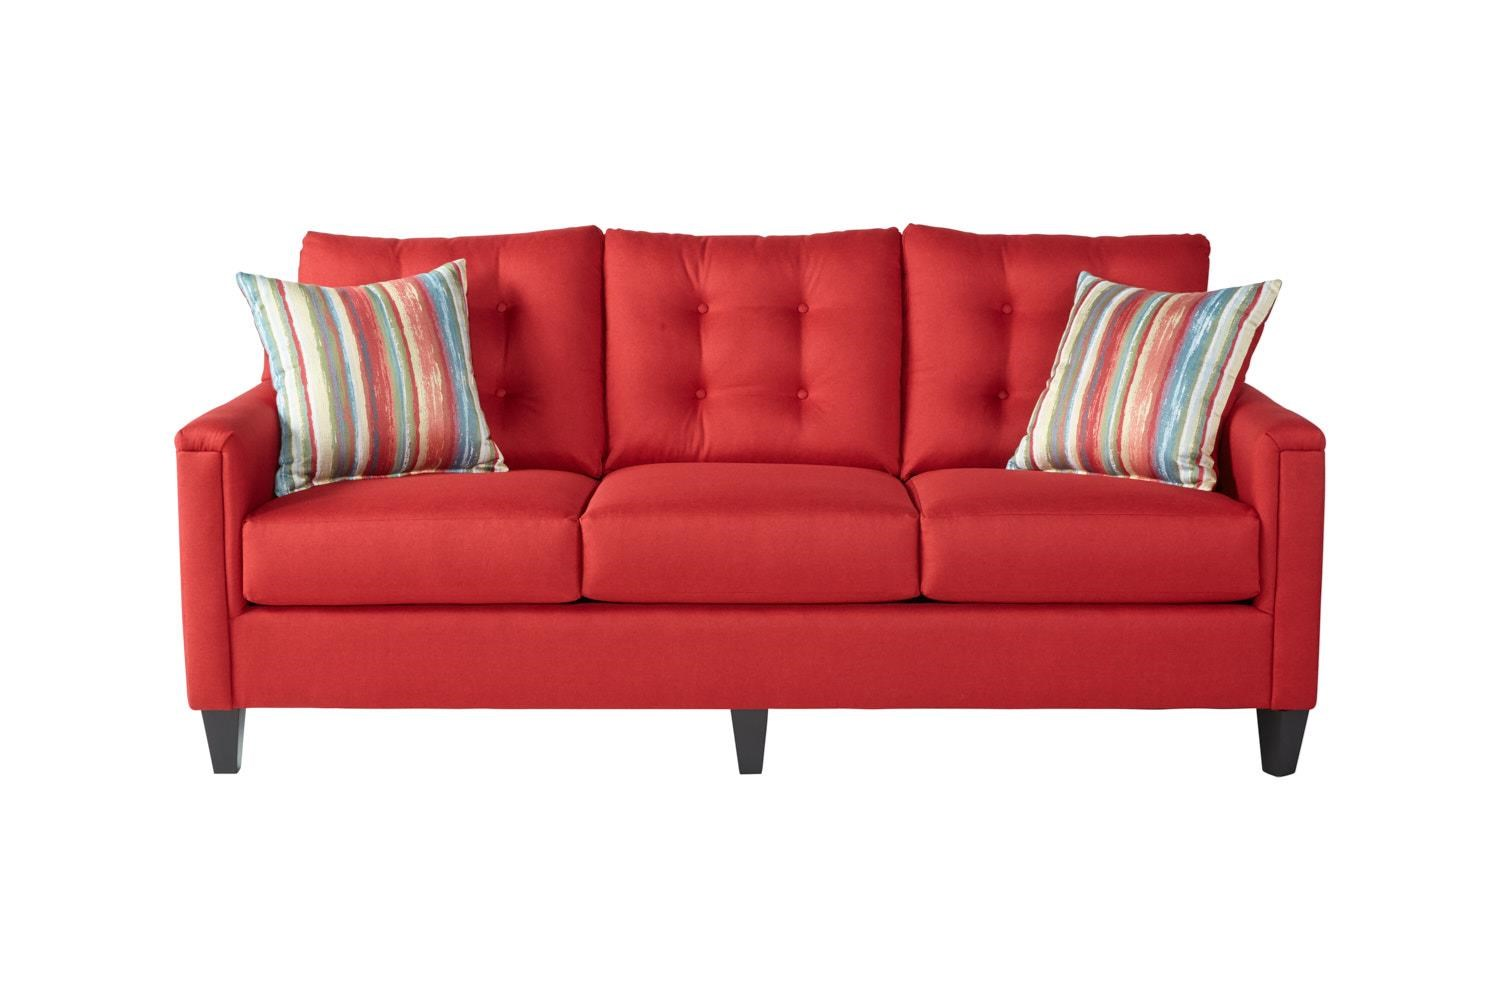 Serta Upholstery by Hughes Furniture 6800Jitt Red Sofa - Item Number: 6800red